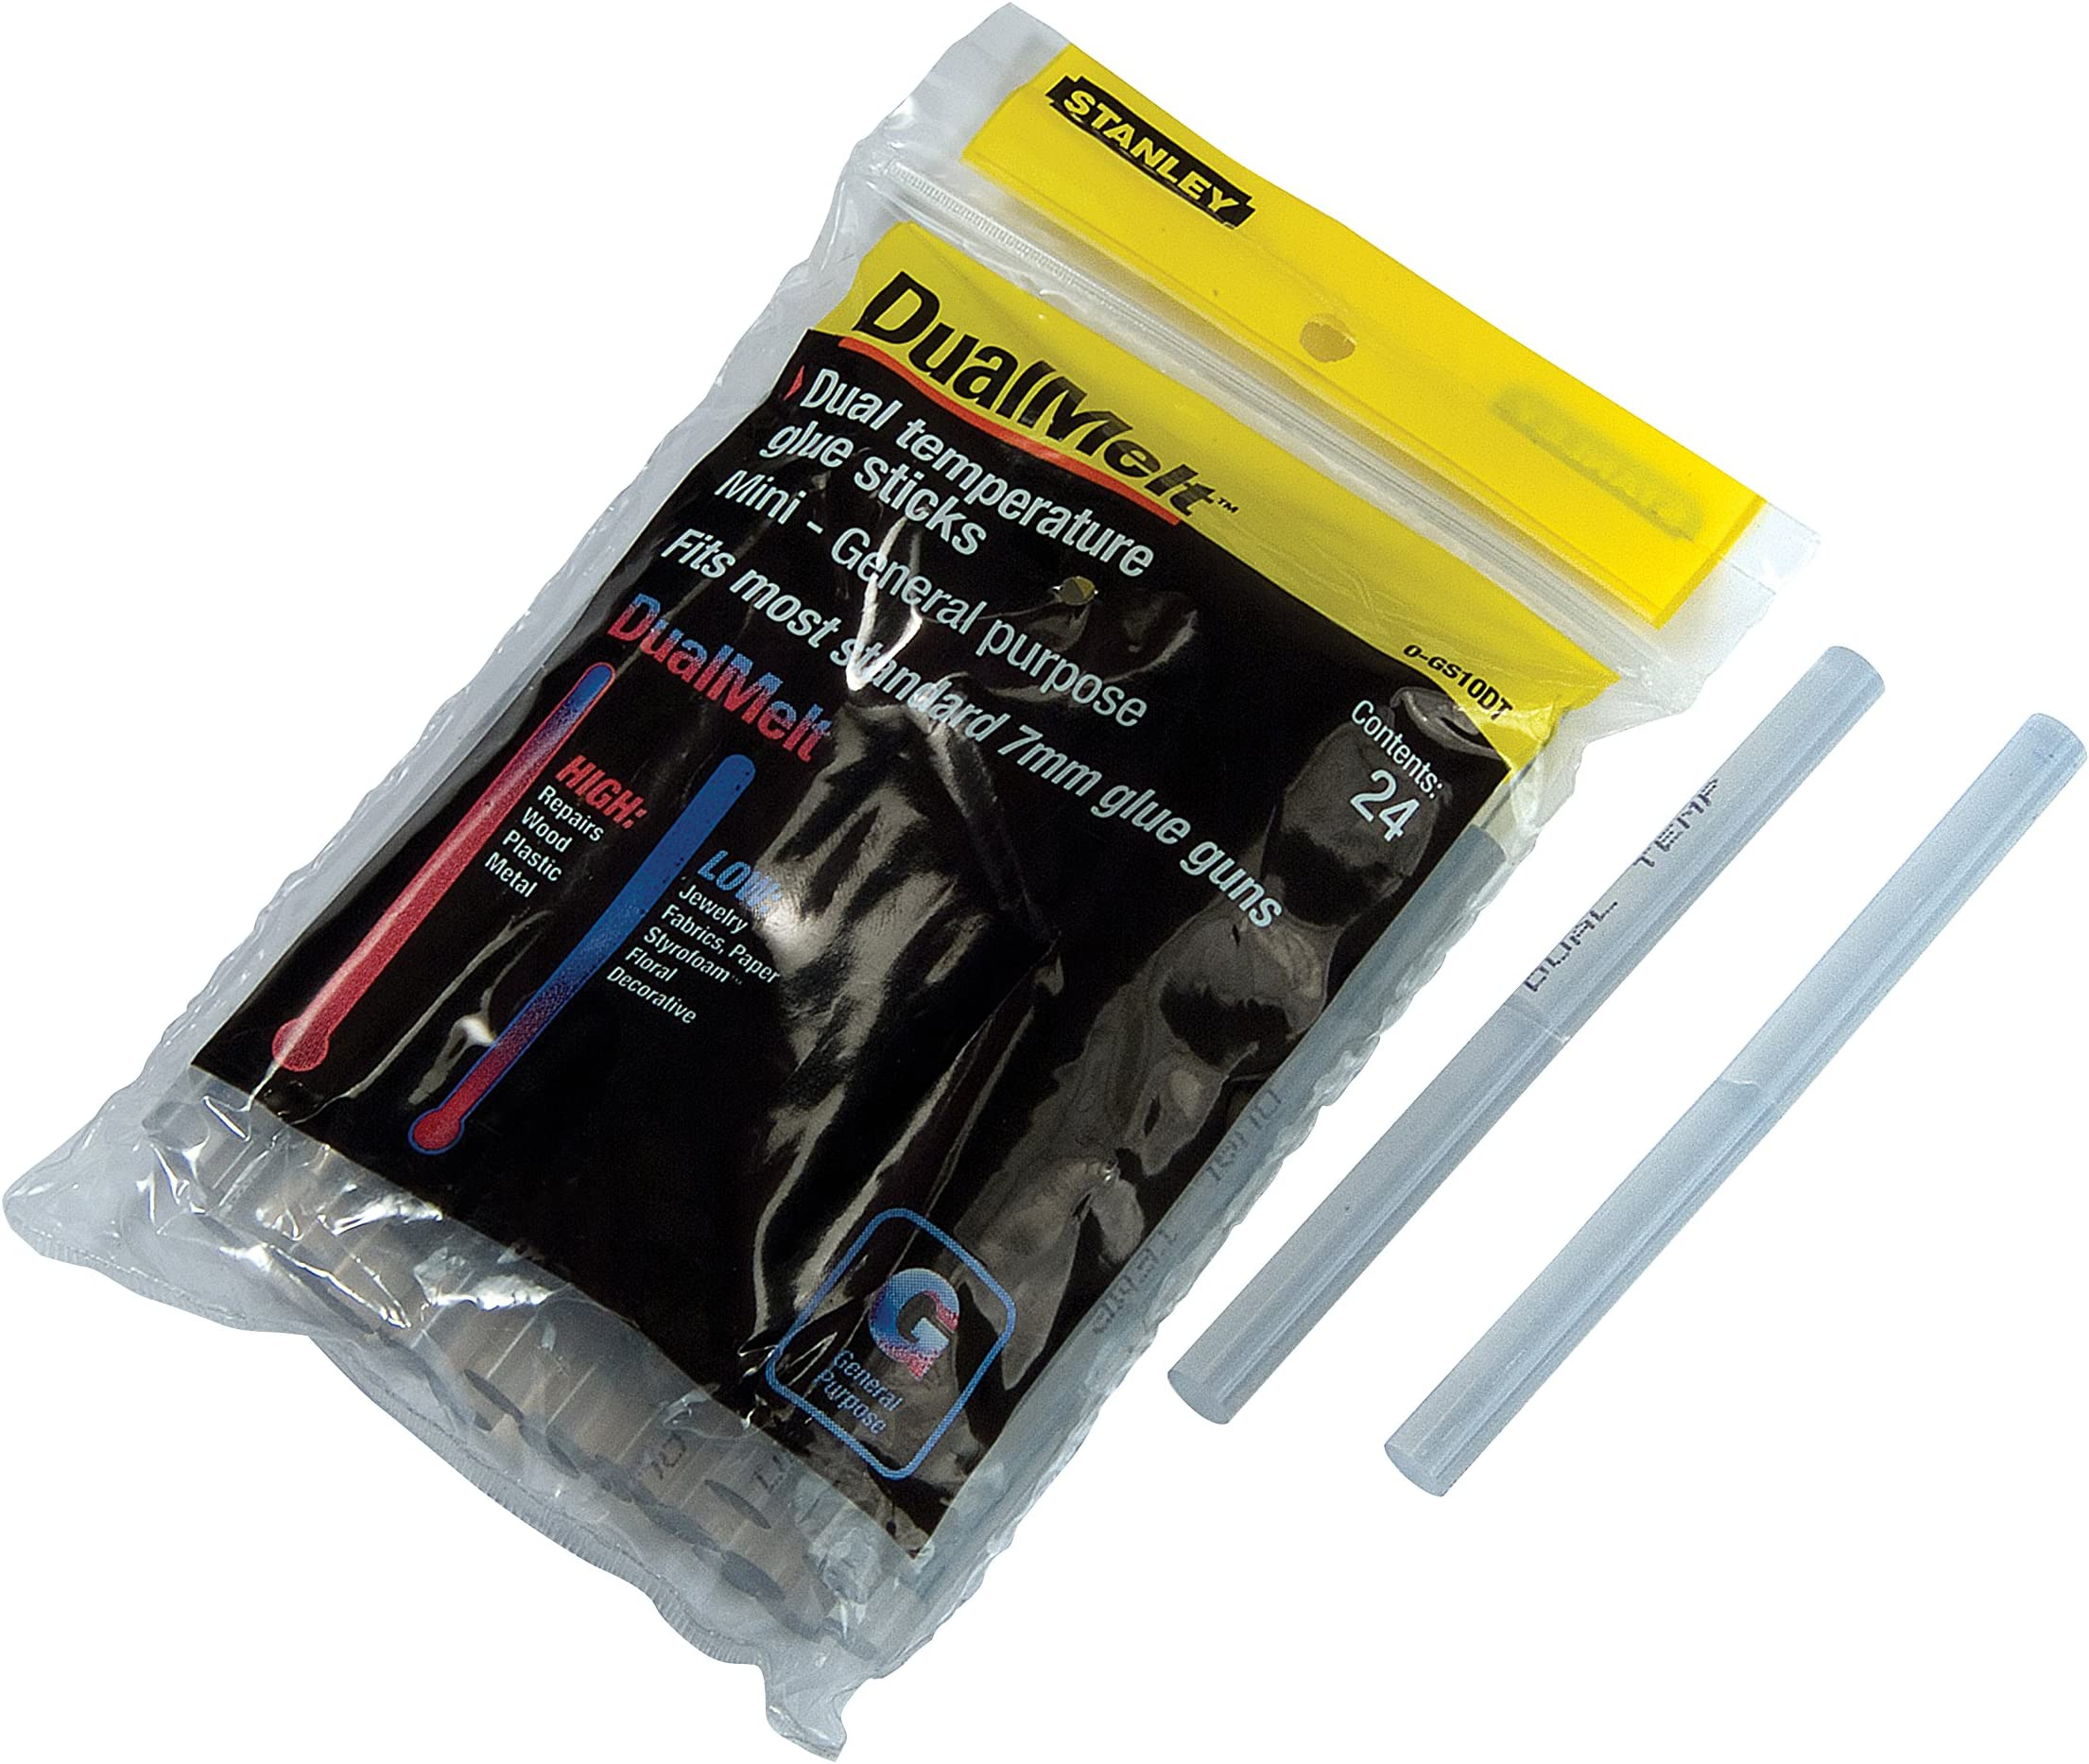 Stanley GS10DT Dual Temp Mini Glue Stick, 4 in. Length x 3 in. Height (Pack of 24)